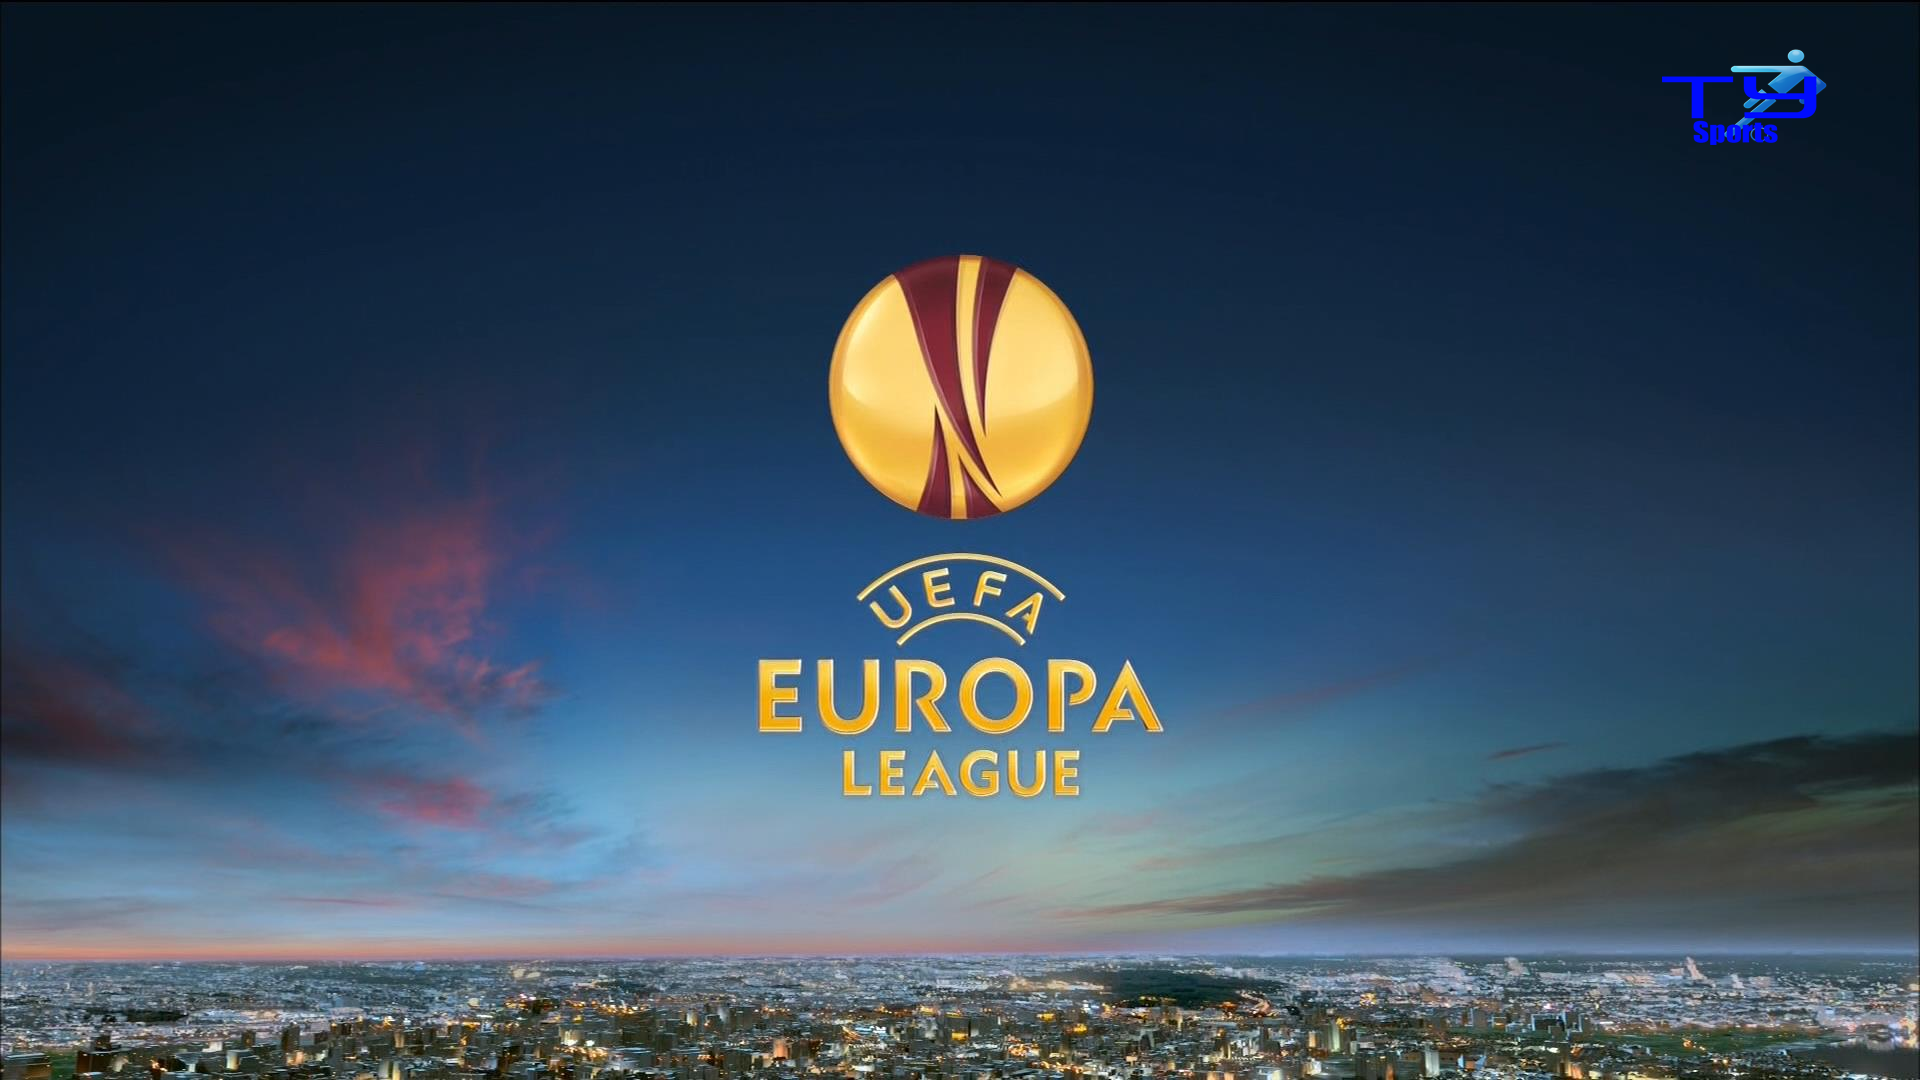 Image  UEFA Europa League Intro And Topitoomay On Screen Bugpng